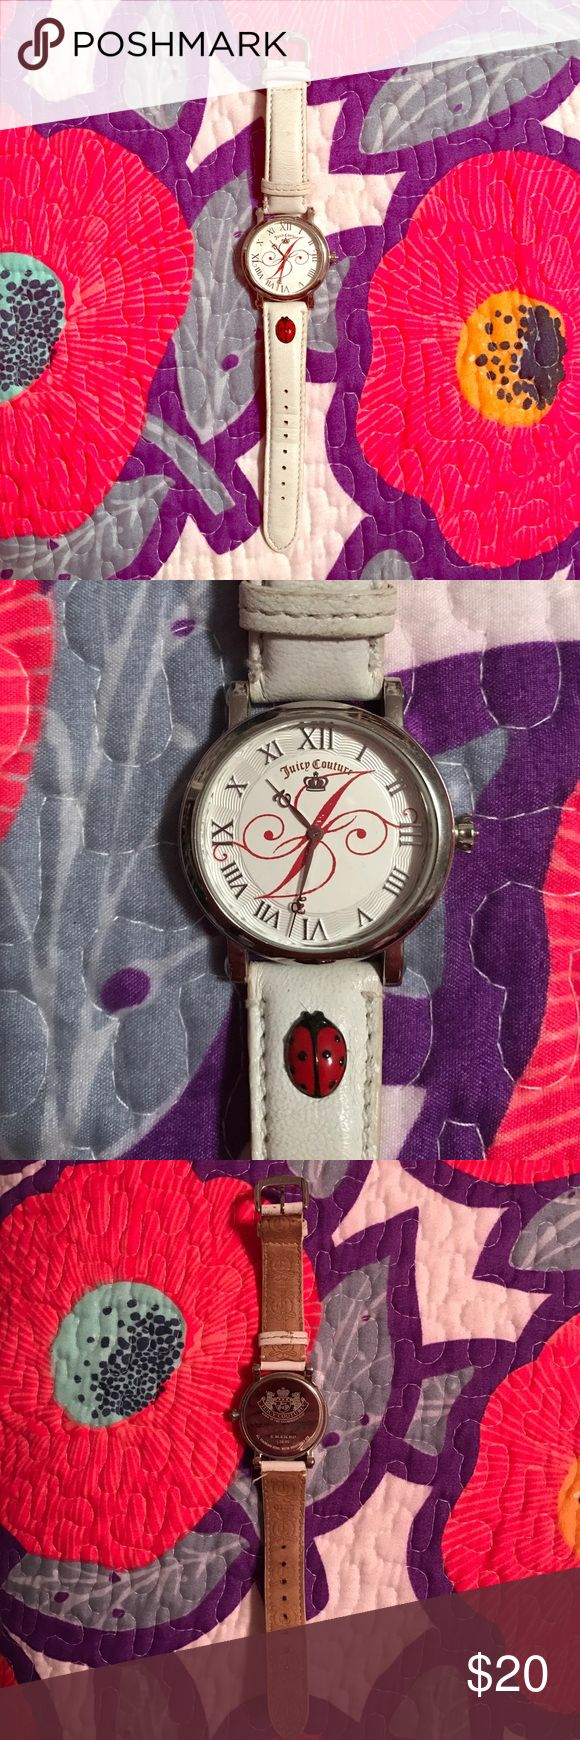 Juicy Couture Watch, Stainless Steel Juicy Couture stainless steel watch with white and red accents and a cute lady bug! Stainless steel & water resistant 3 ATM. Super cute for spring! Originally bought for $50 from Nordstrom Rack, selling for $20. Comes from a smoke-free home :) Juicy Couture Accessories Watches